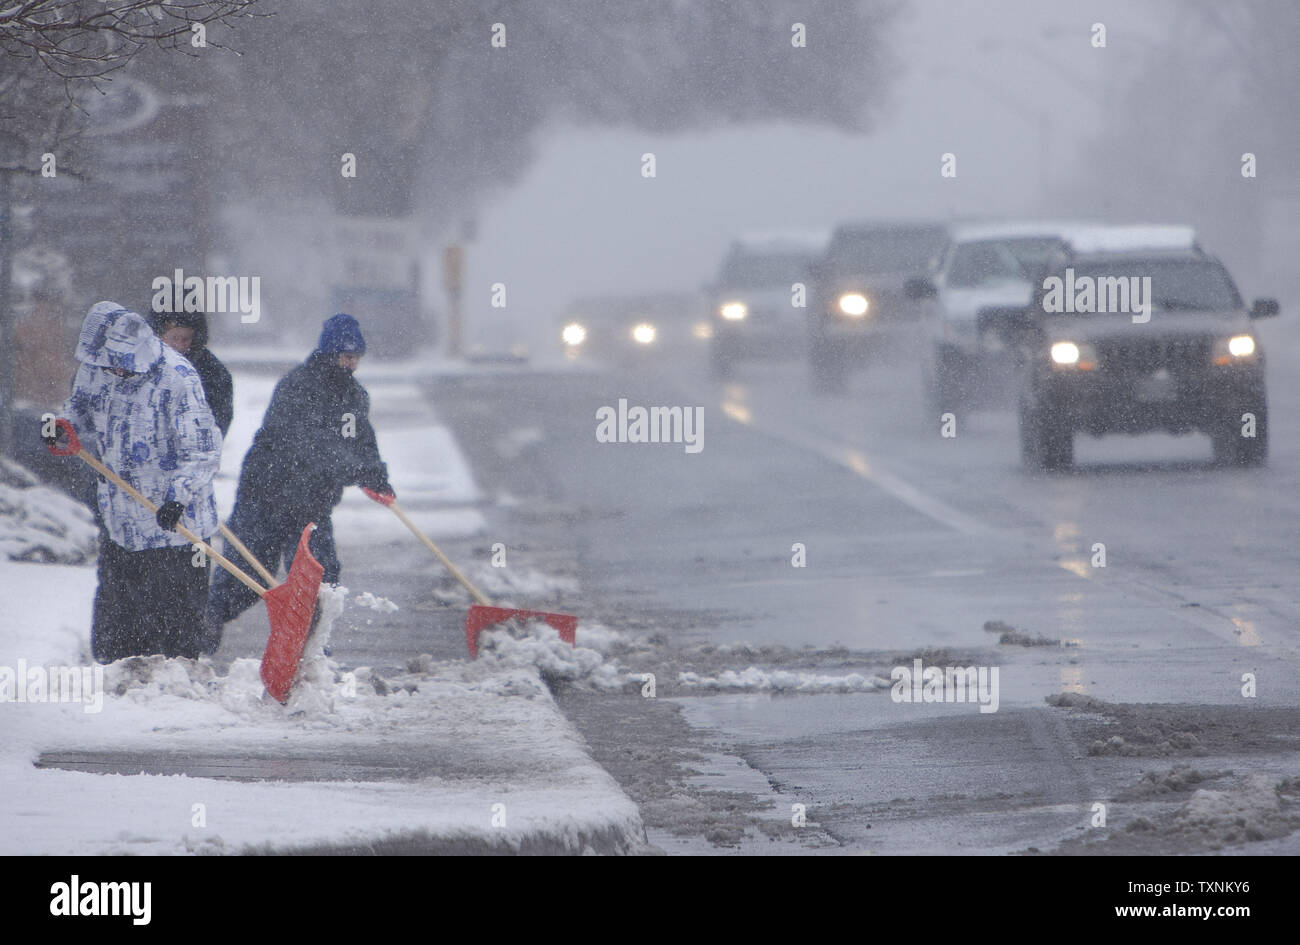 Drivers found streets wet and slushy during an all day winter storm in Denver on March 9, 2013.  Weather reports indicated 6-12 inches of snow shall fall in the area before the quick moving storm moves out into the eastern plains.     UPI/Gary C. Caskey - Stock Image